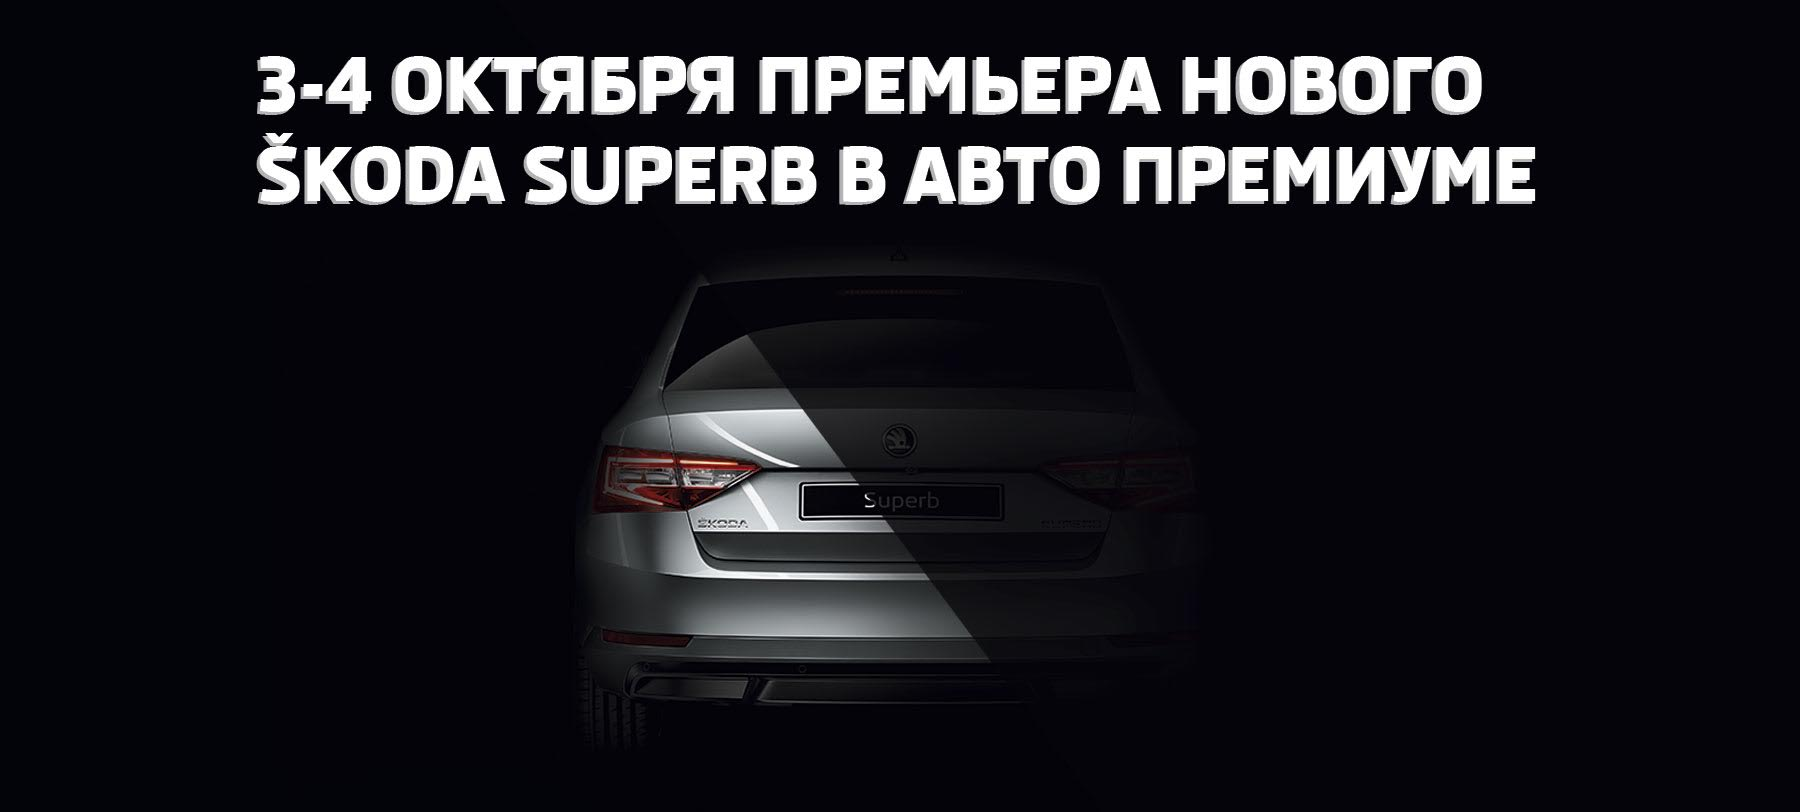 Премьерные дни нового ŠKODA Superb